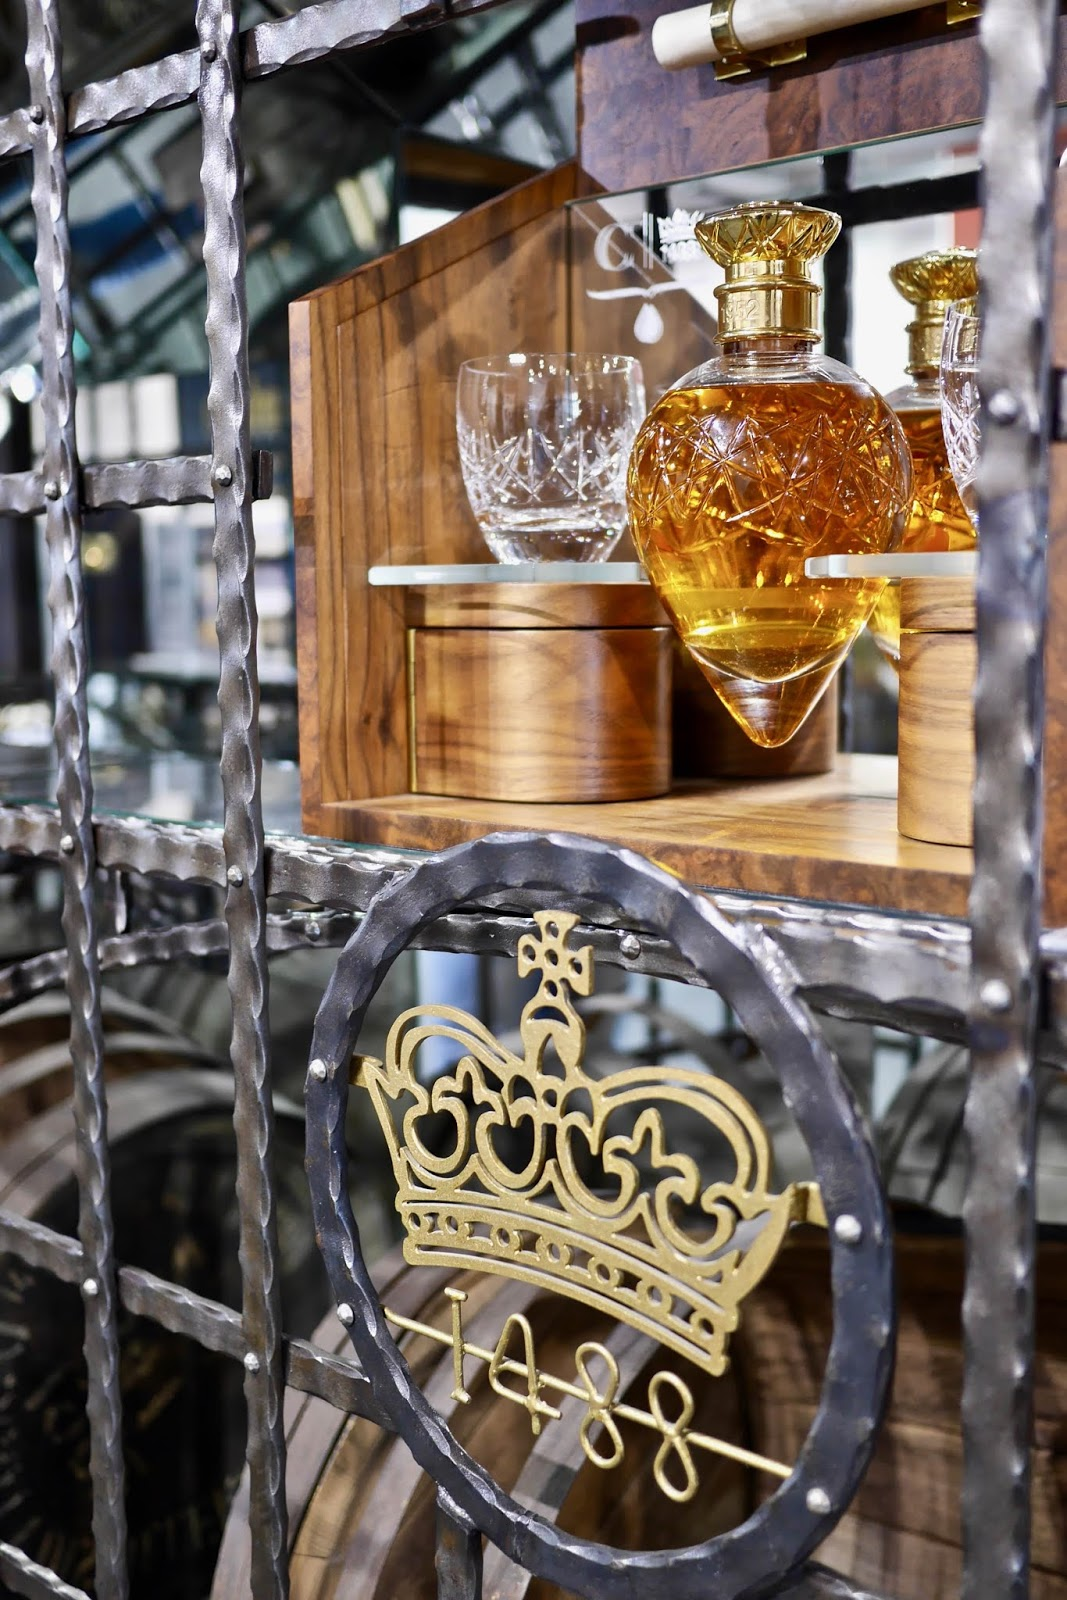 Tullibardine Custodian whisky collection very rare whisky at £20,000 a bottle